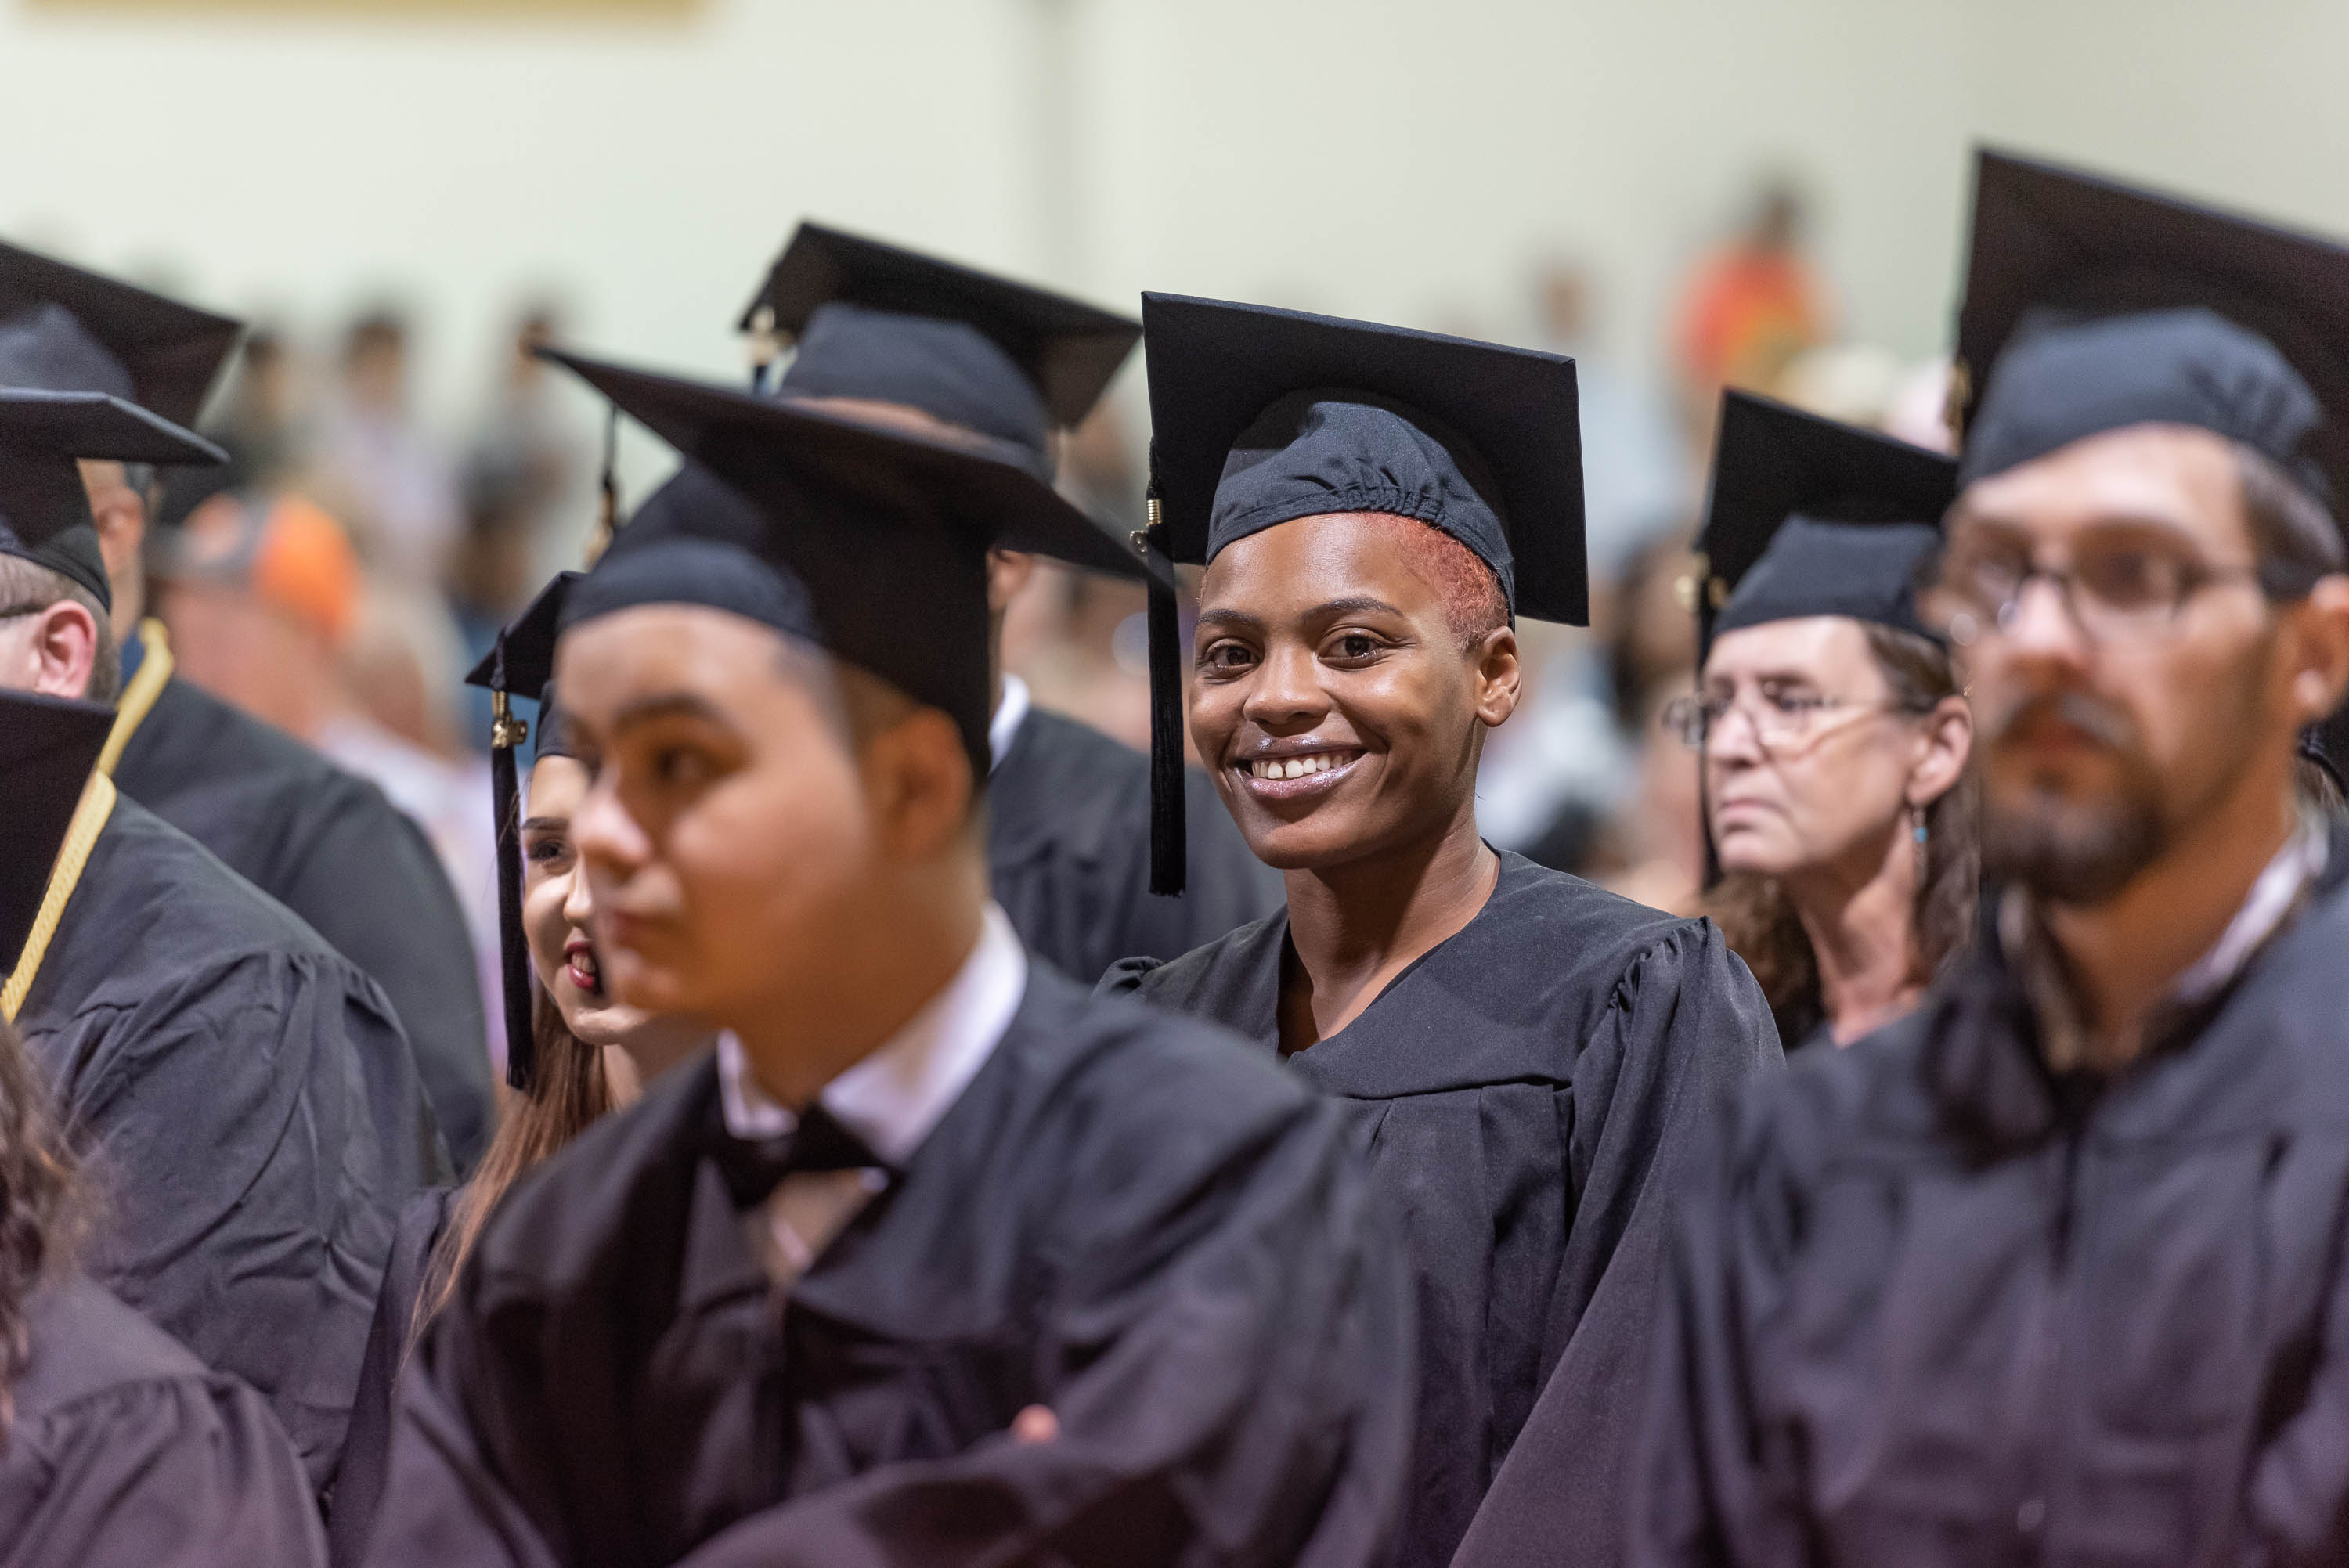 In 2018-19, 116 students earned their high school equivalency diploma and 21 students earned their adult high school diploma.